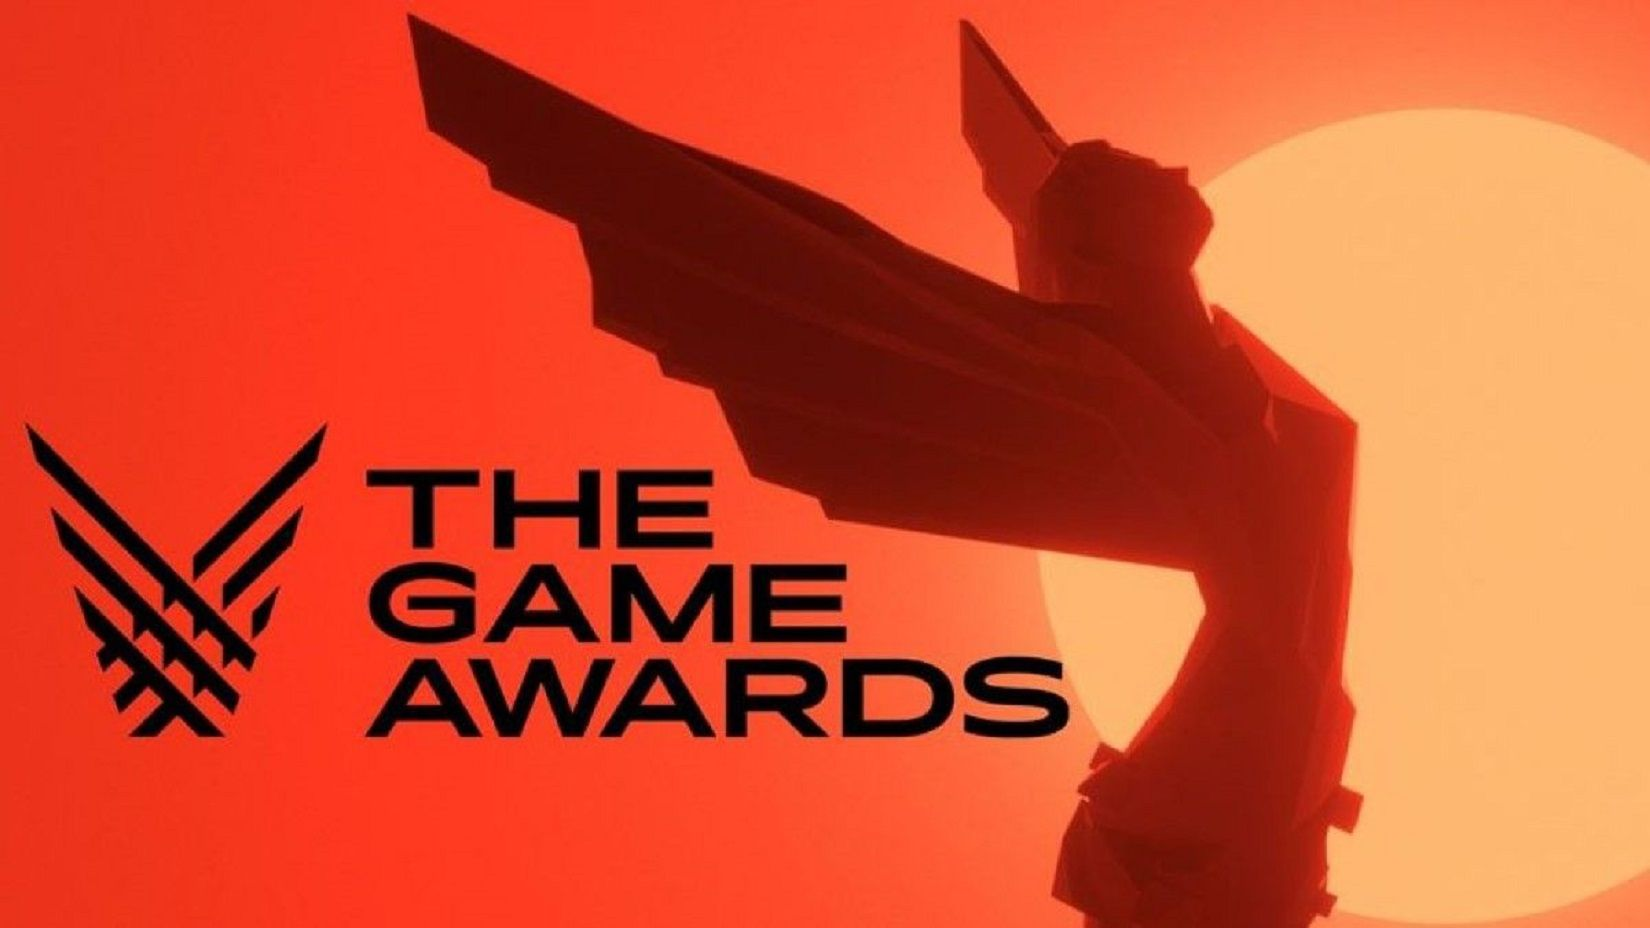 The Last of Us Part II wins game of the year